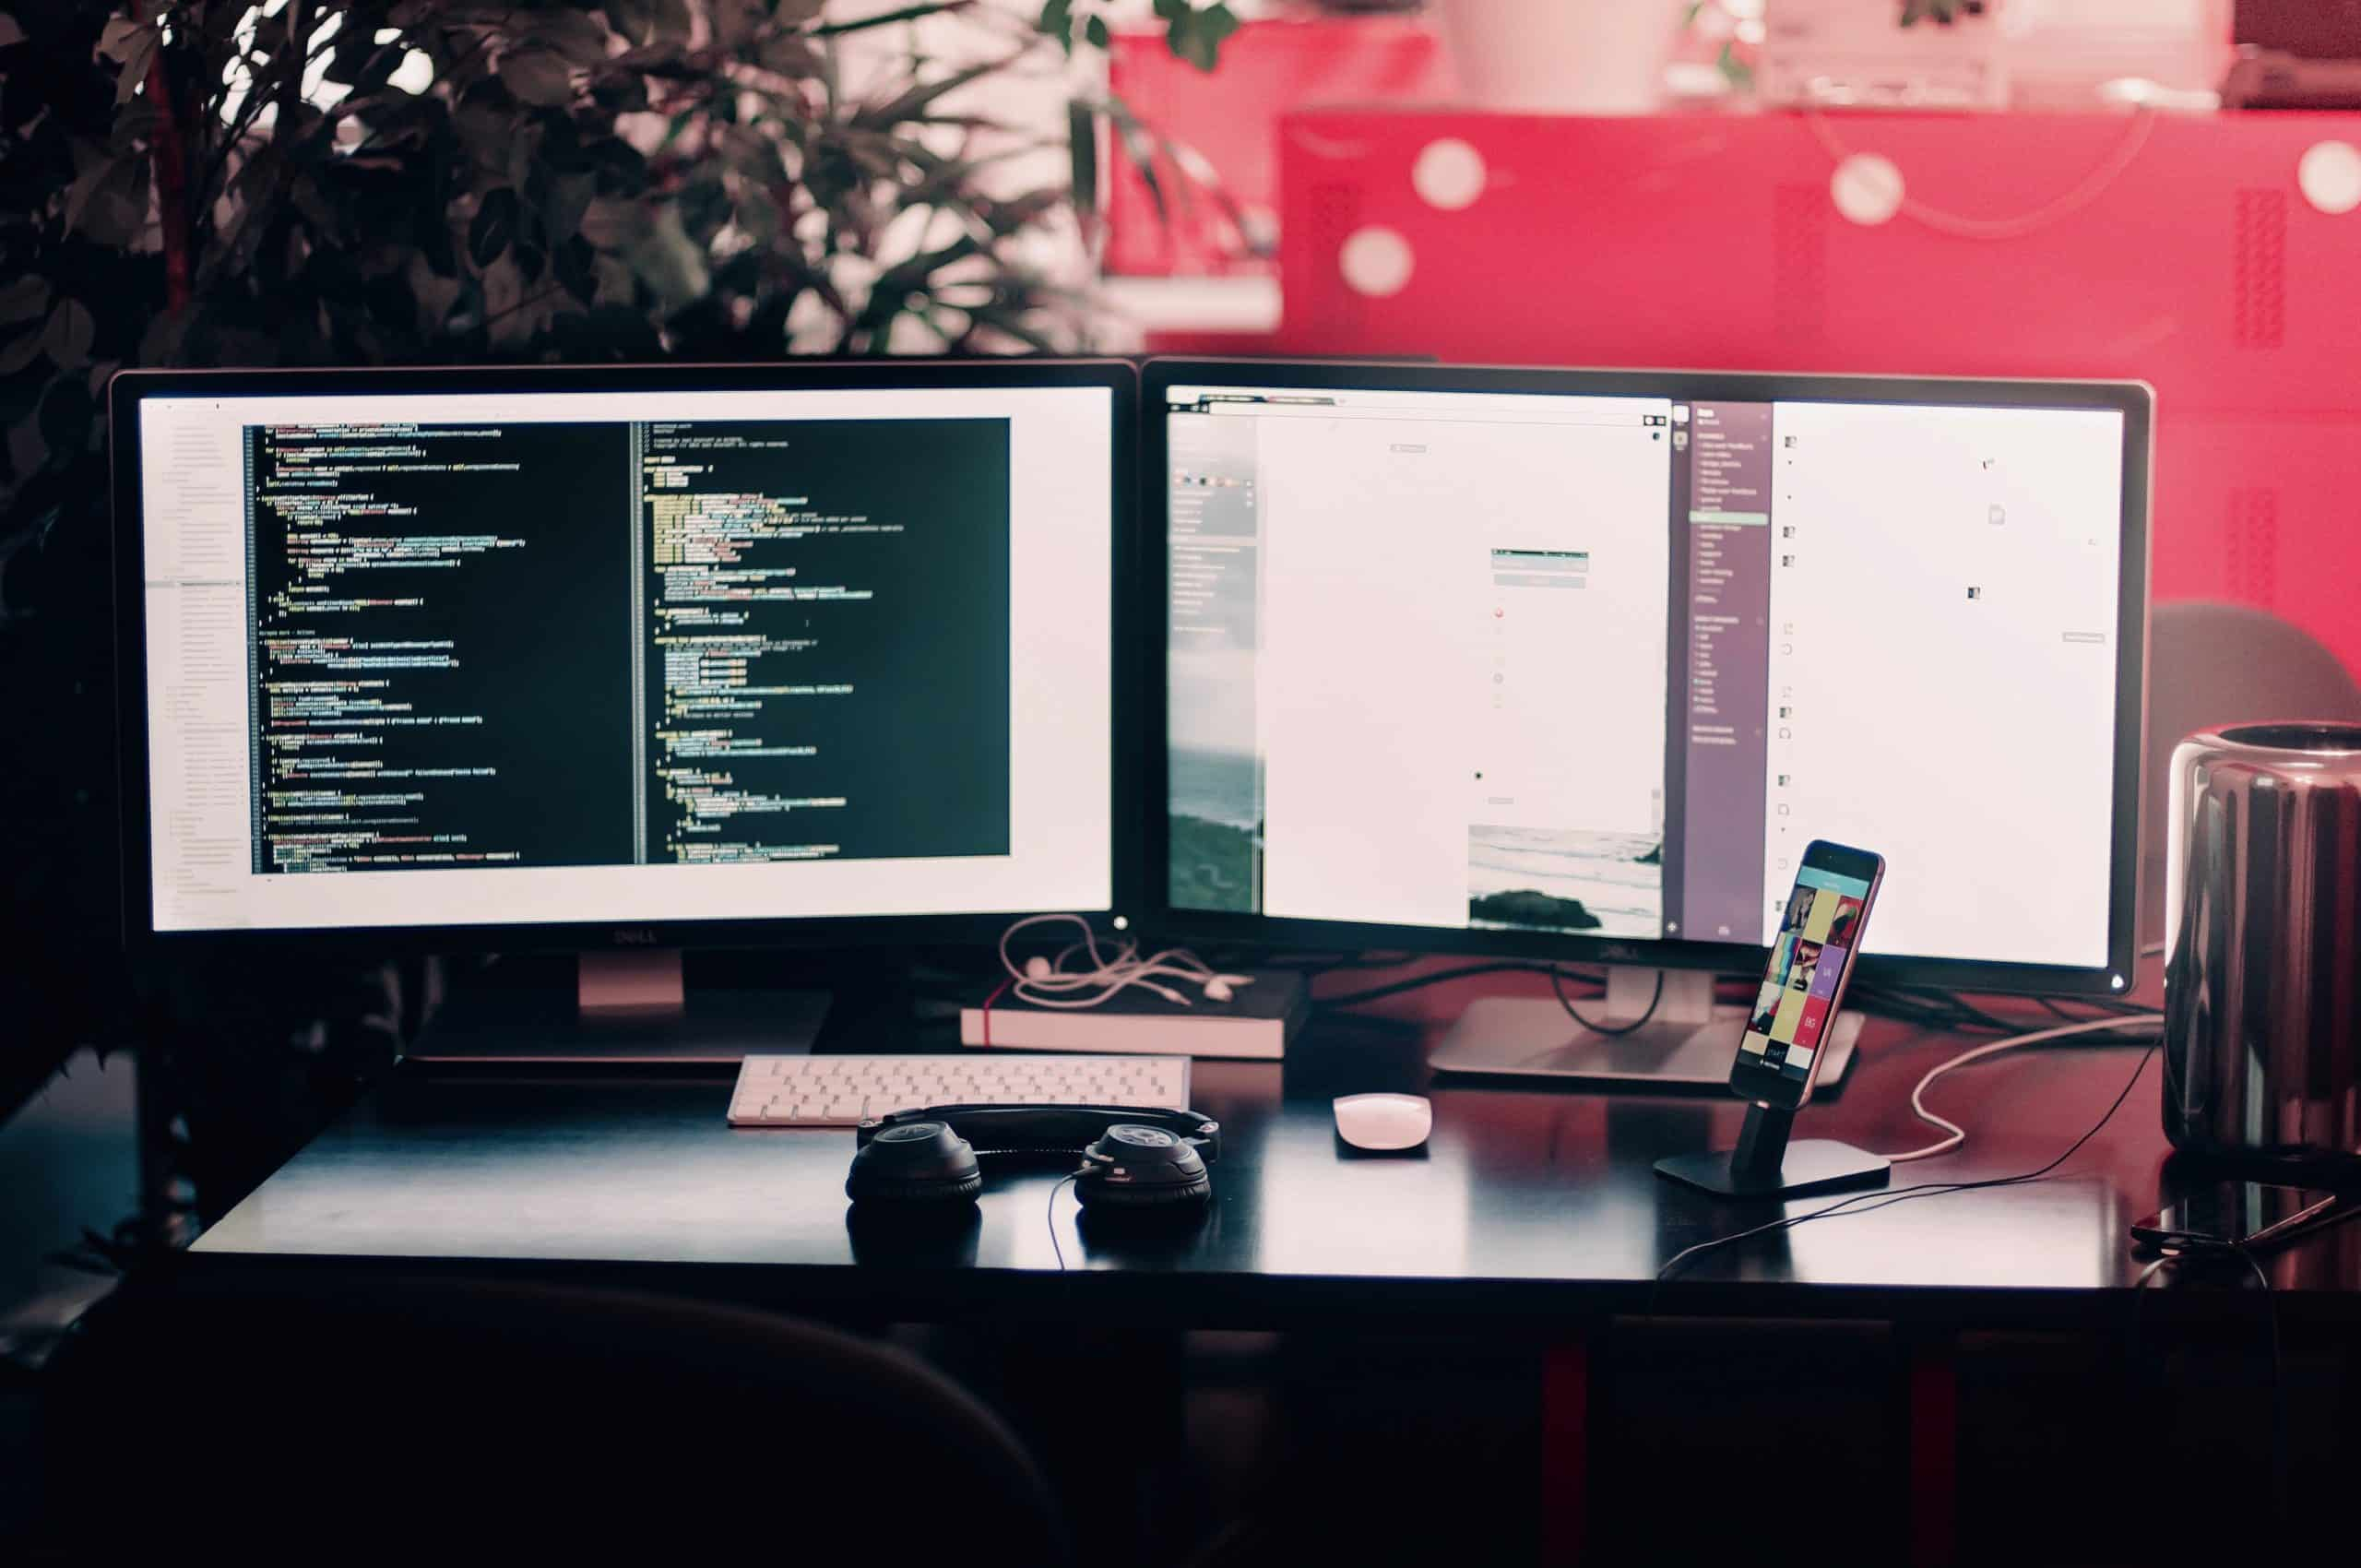 A web developers workstation with dual screens, mobile phone and headphones on the desk